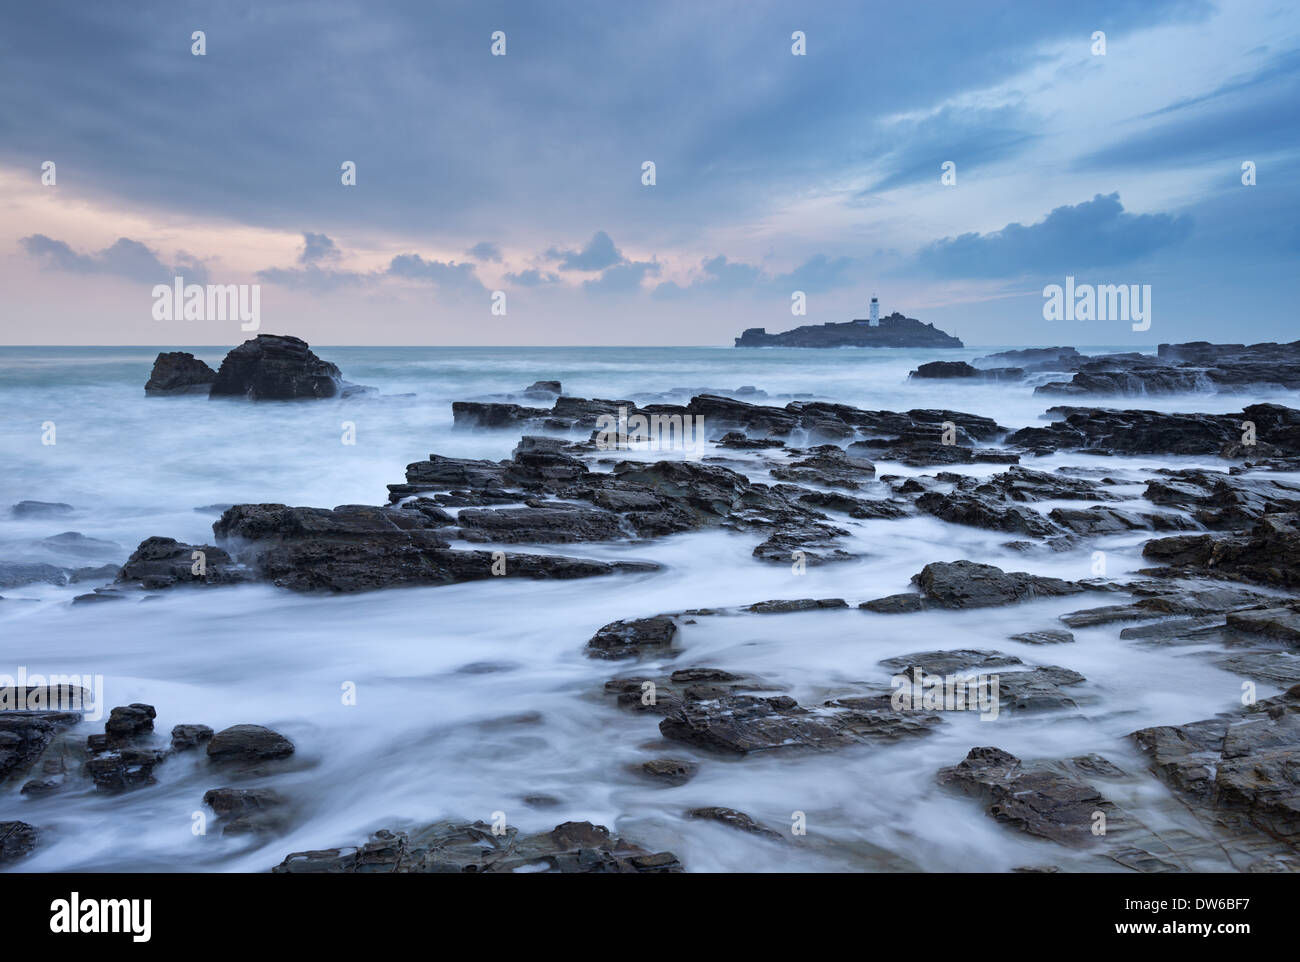 High Tide at Godrevy, looking towards Godrevy Lighthouse, St Ives Bay, Cornwall, England. Winter (January) 2014. Stock Photo